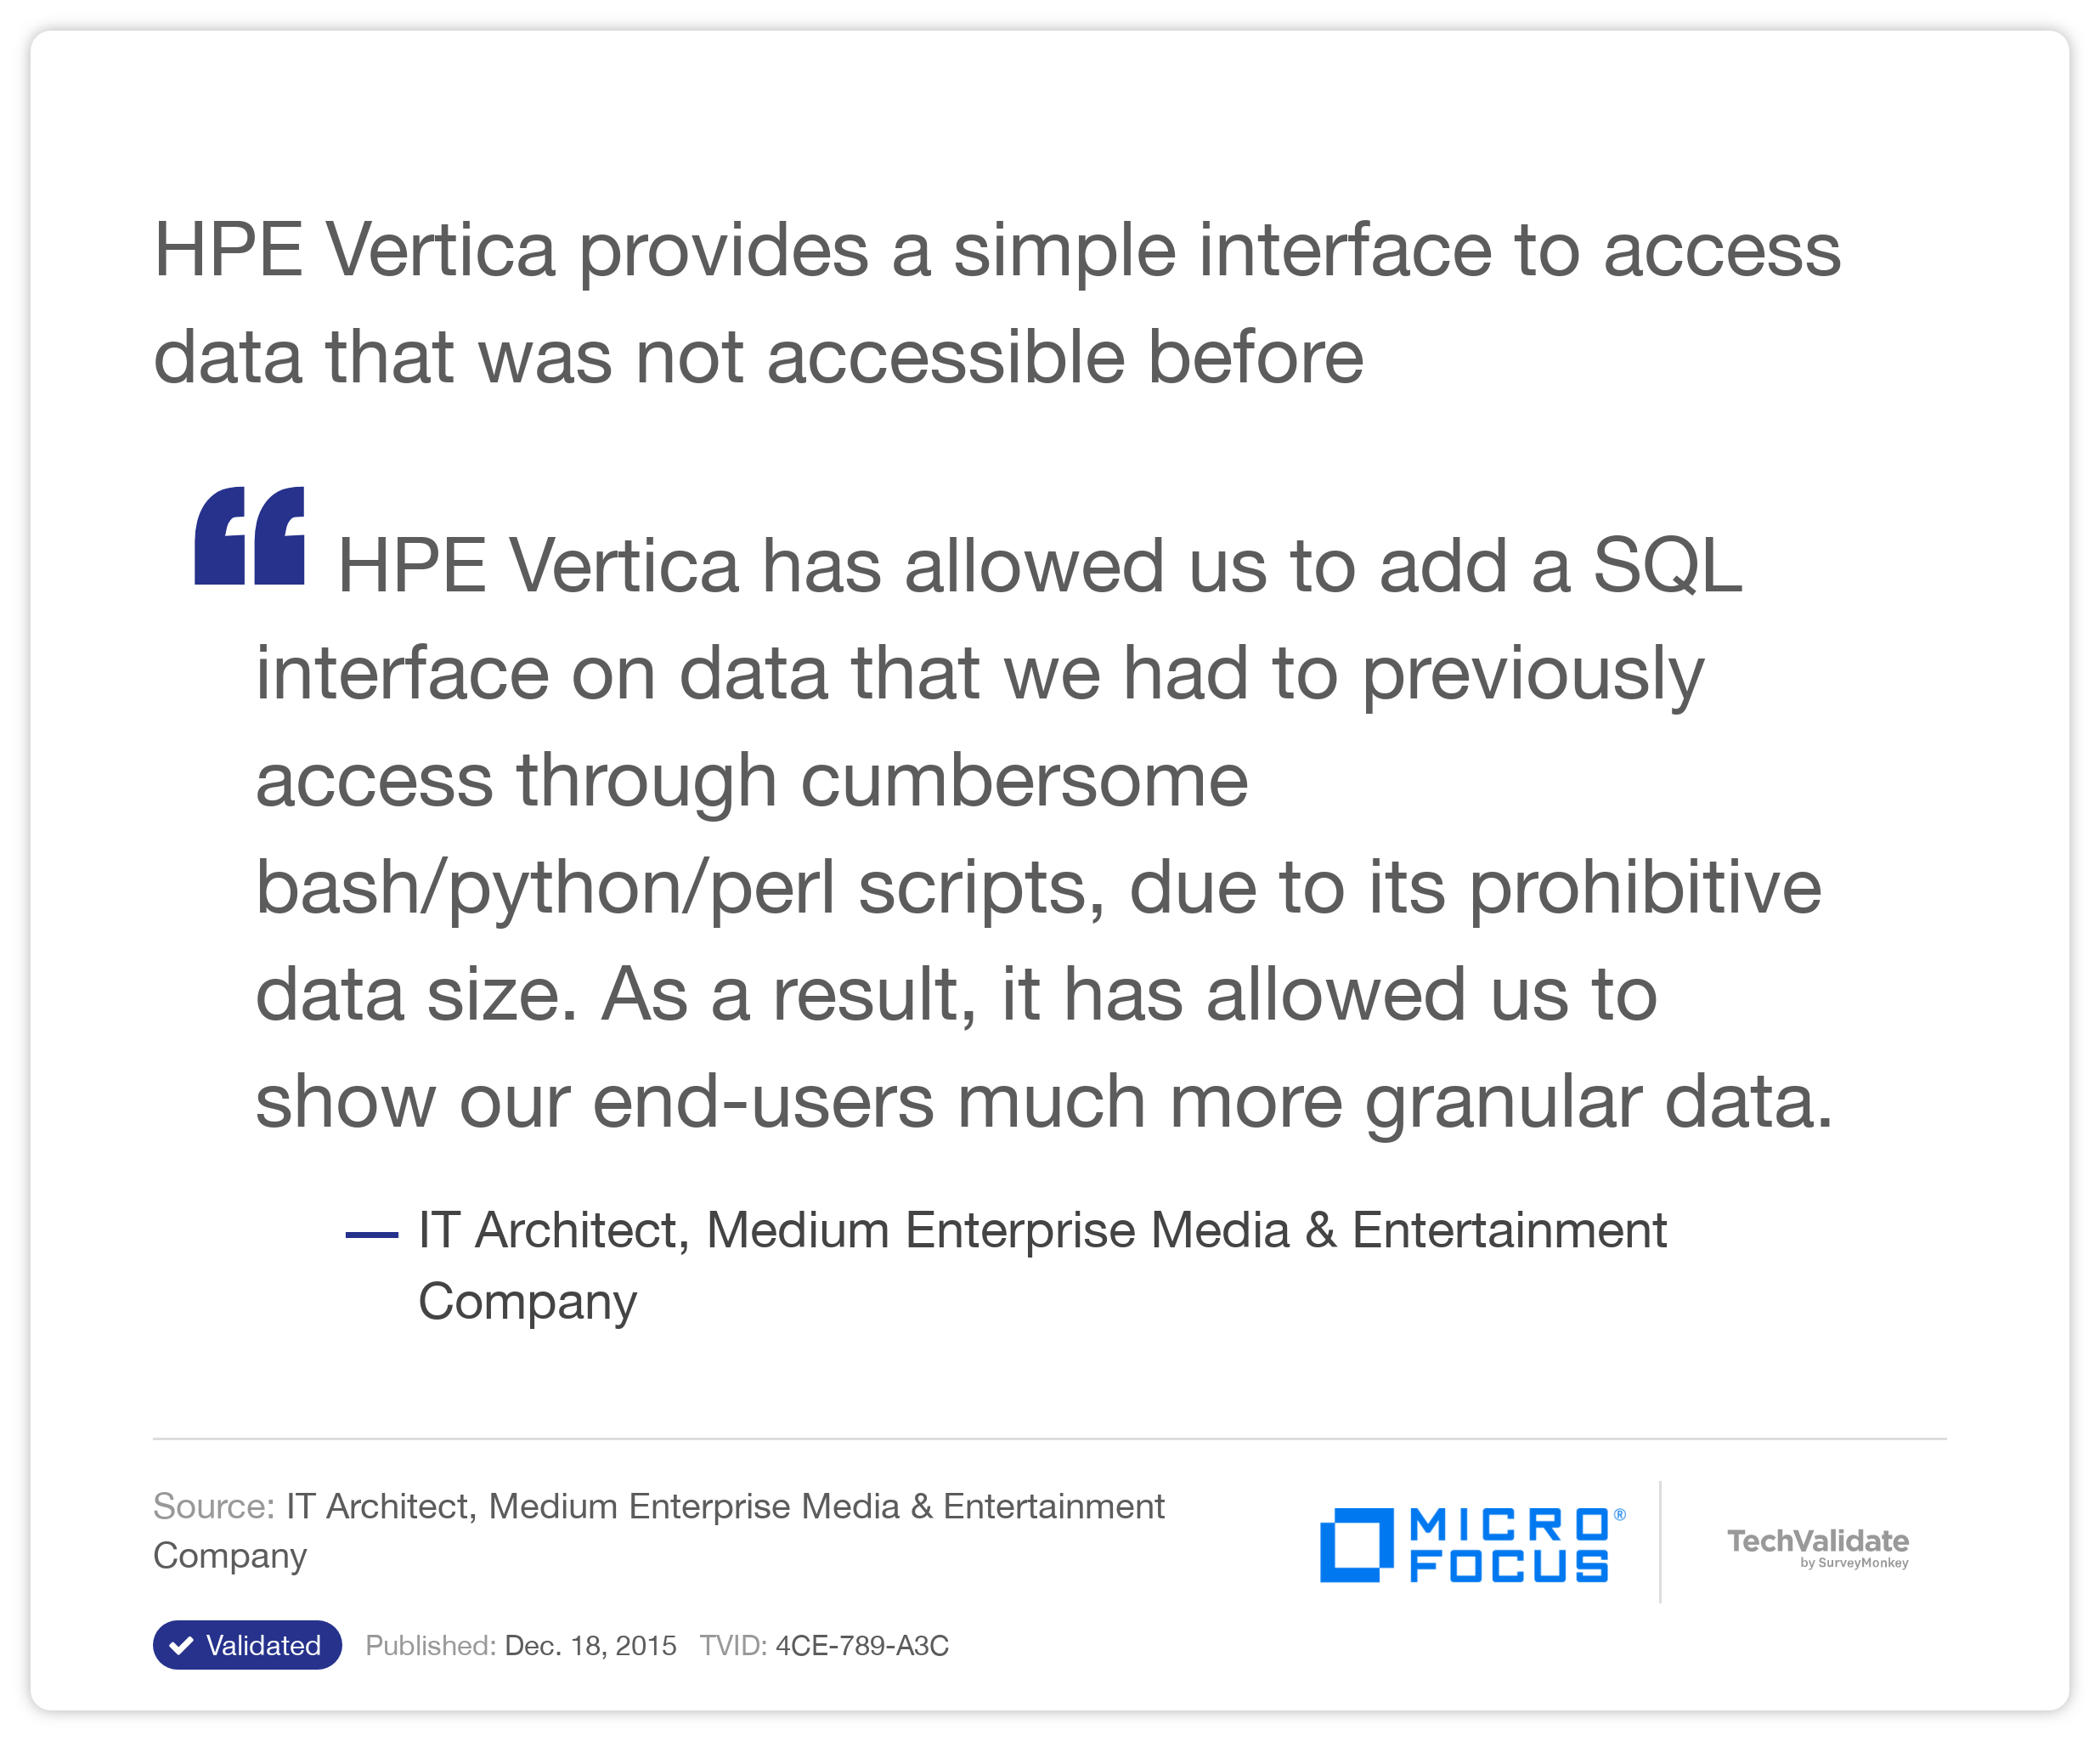 HP Vertica provides a simple interface to access data that was not accessible before